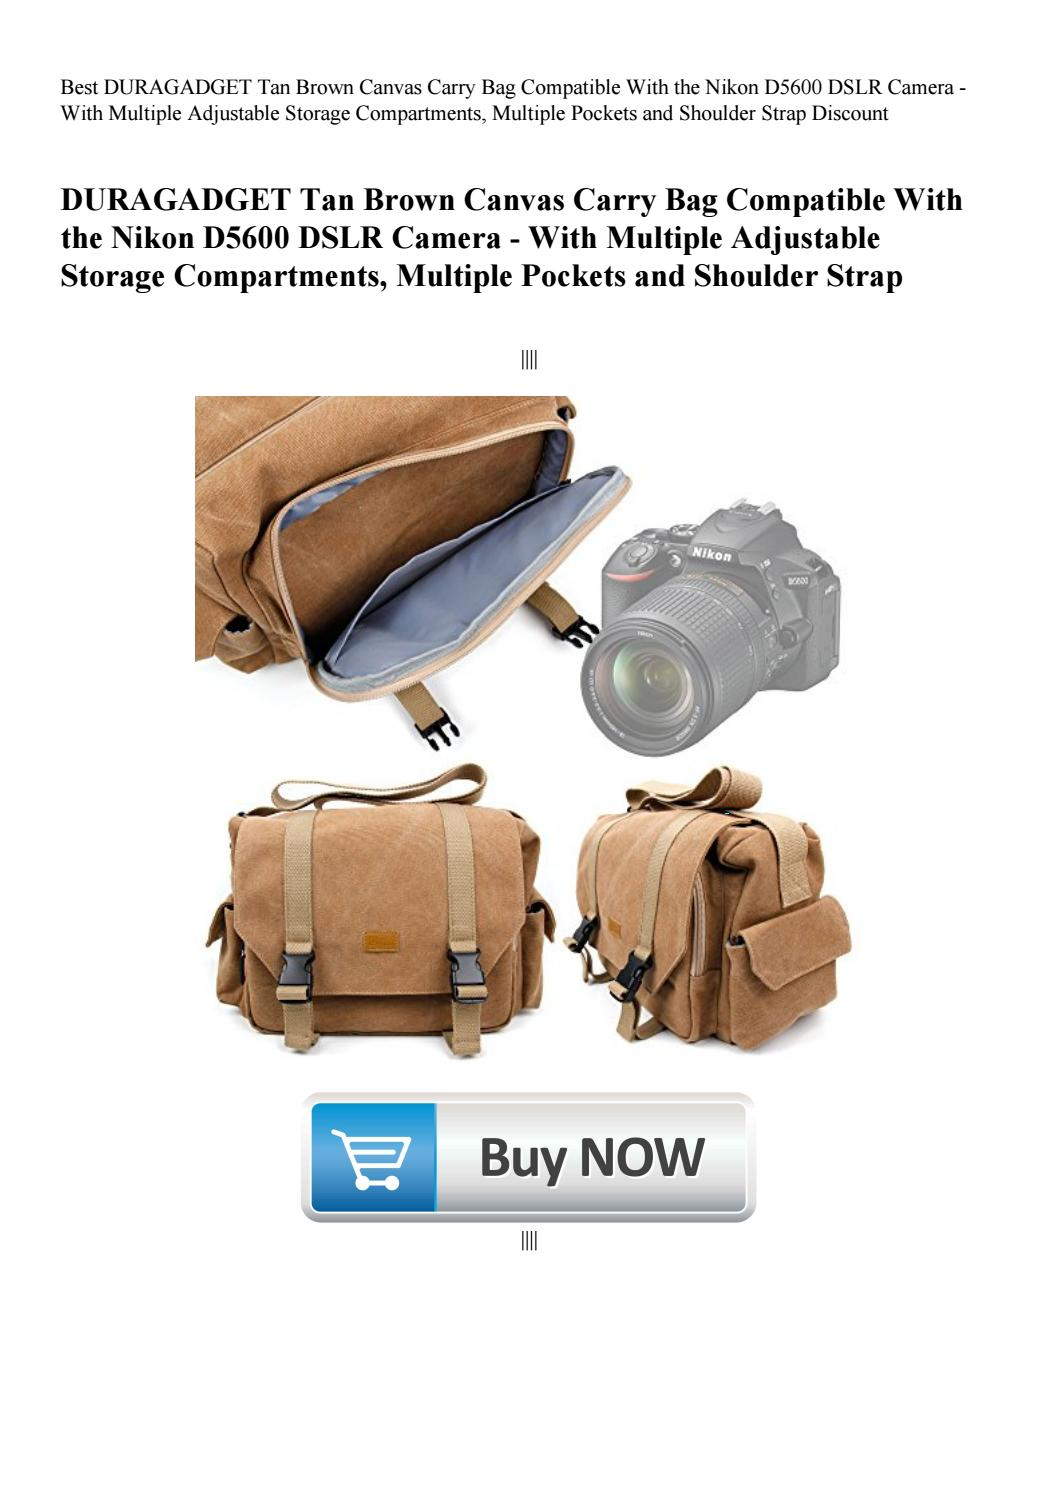 f2c4f82665c4 Best DURAGADGET Tan Brown Canvas Carry Bag Compatible With the Nikon ...